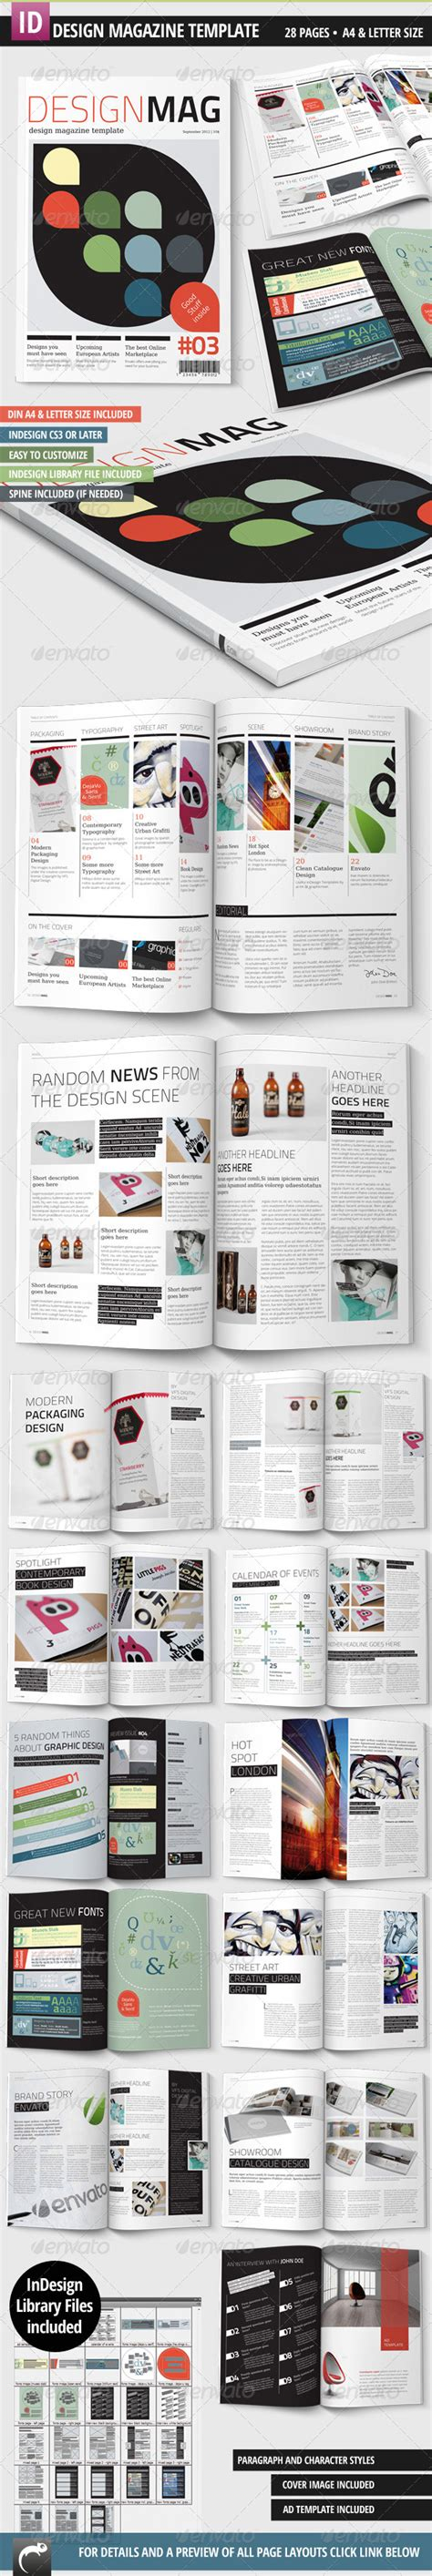 magazine layout template graphicriver design magazine template a4 letter 28 pages